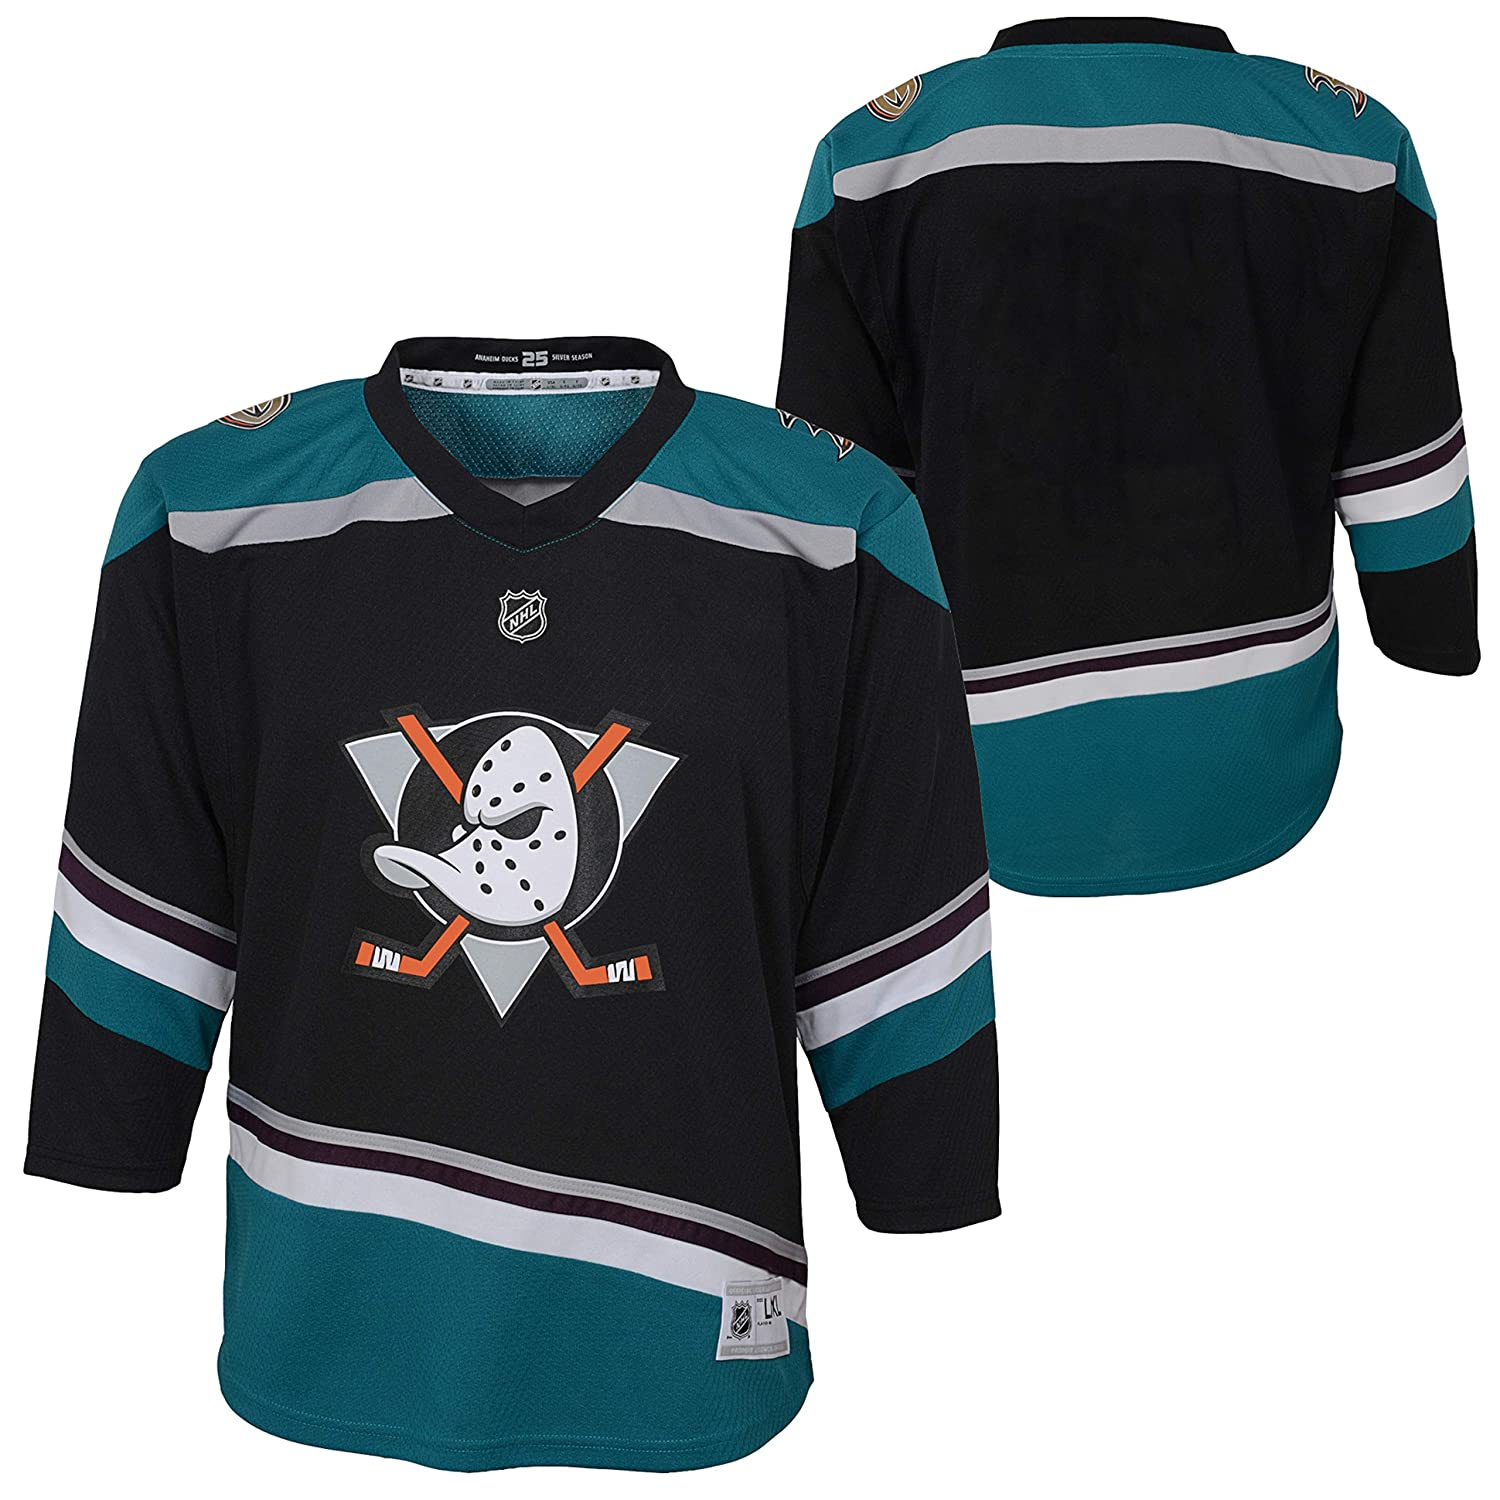 super popular e61c1 fd9b6 Amazon.com: Anaheim Ducks Black Teal Blank Youth Alternate ...